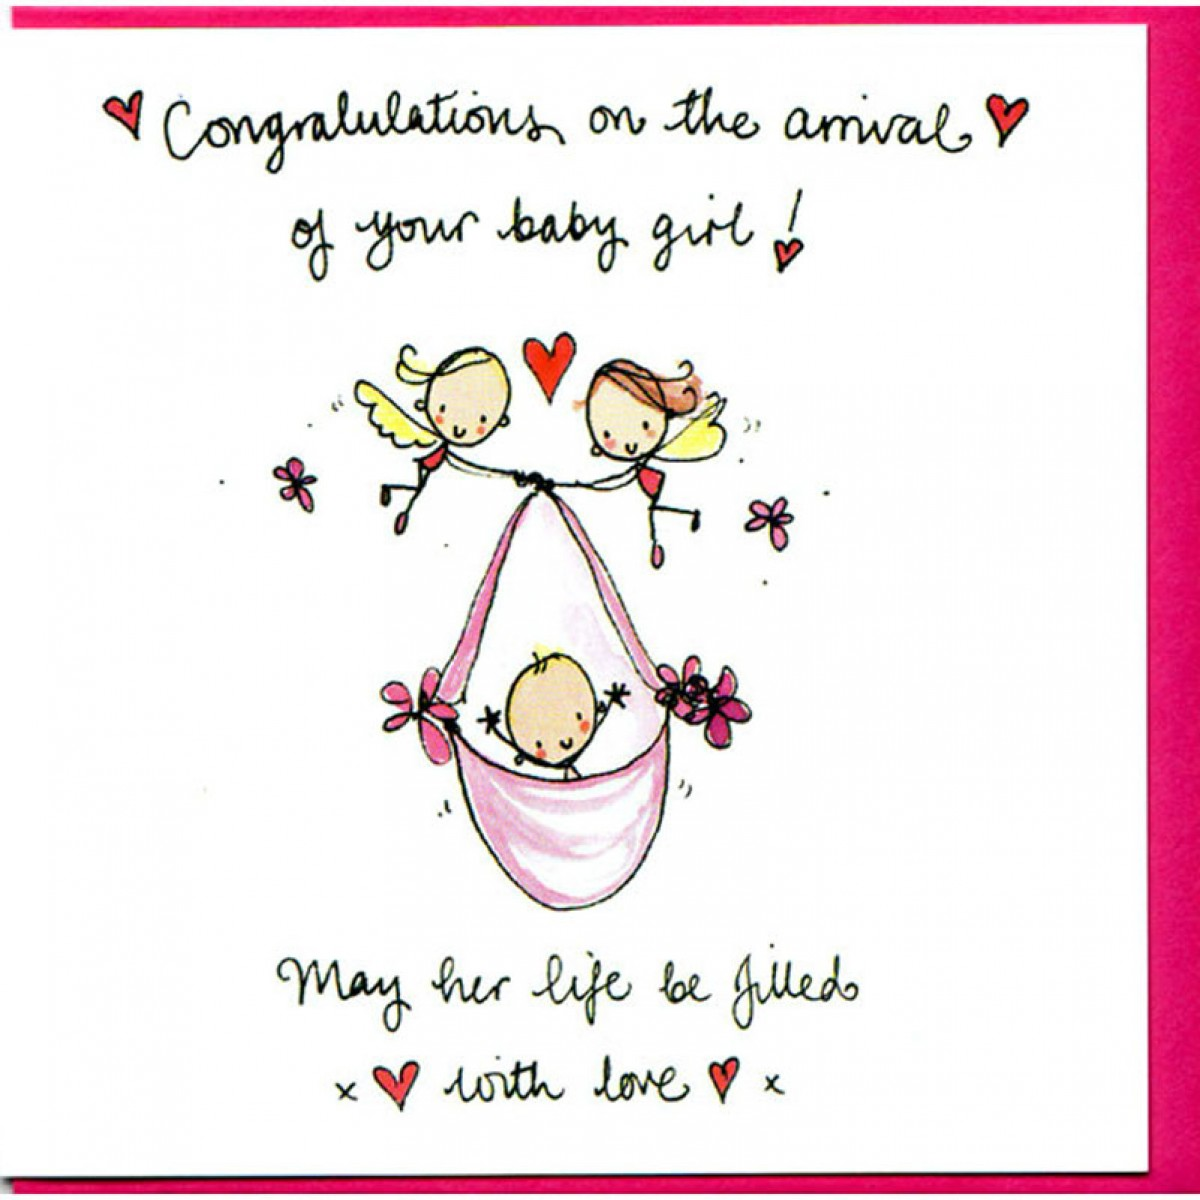 Fullsize Of Congratulations On Your Baby Girl